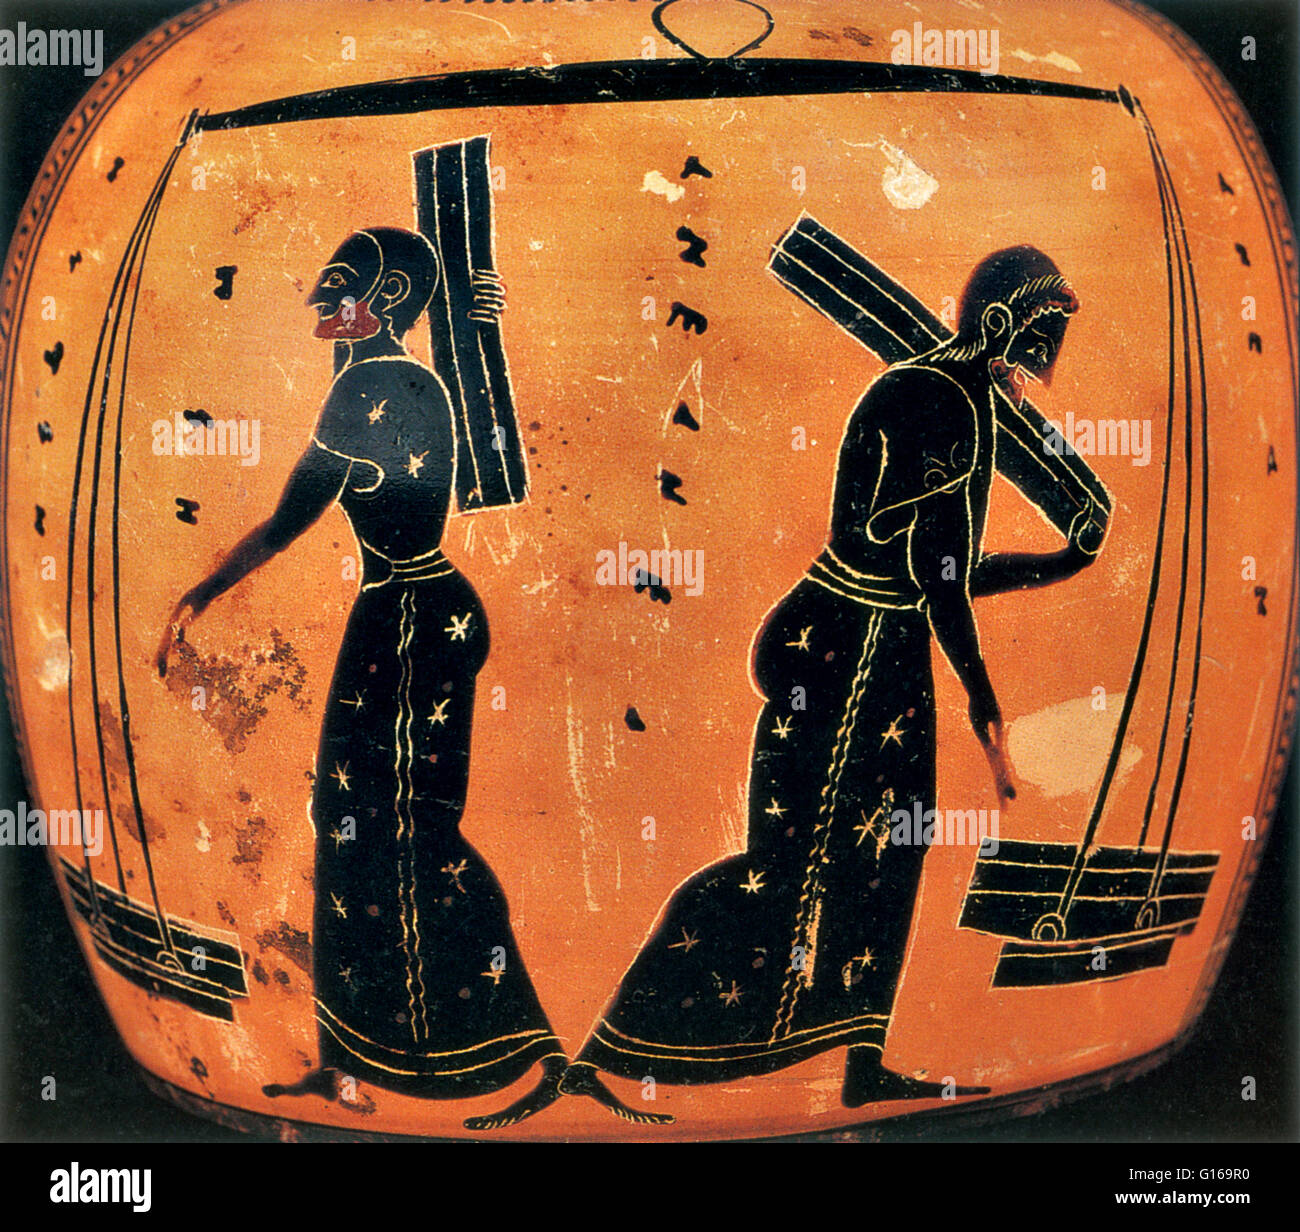 Weights and measures were among the earliest tools invented by man. Early Babylonian and Egyptian records, and the - Stock Image